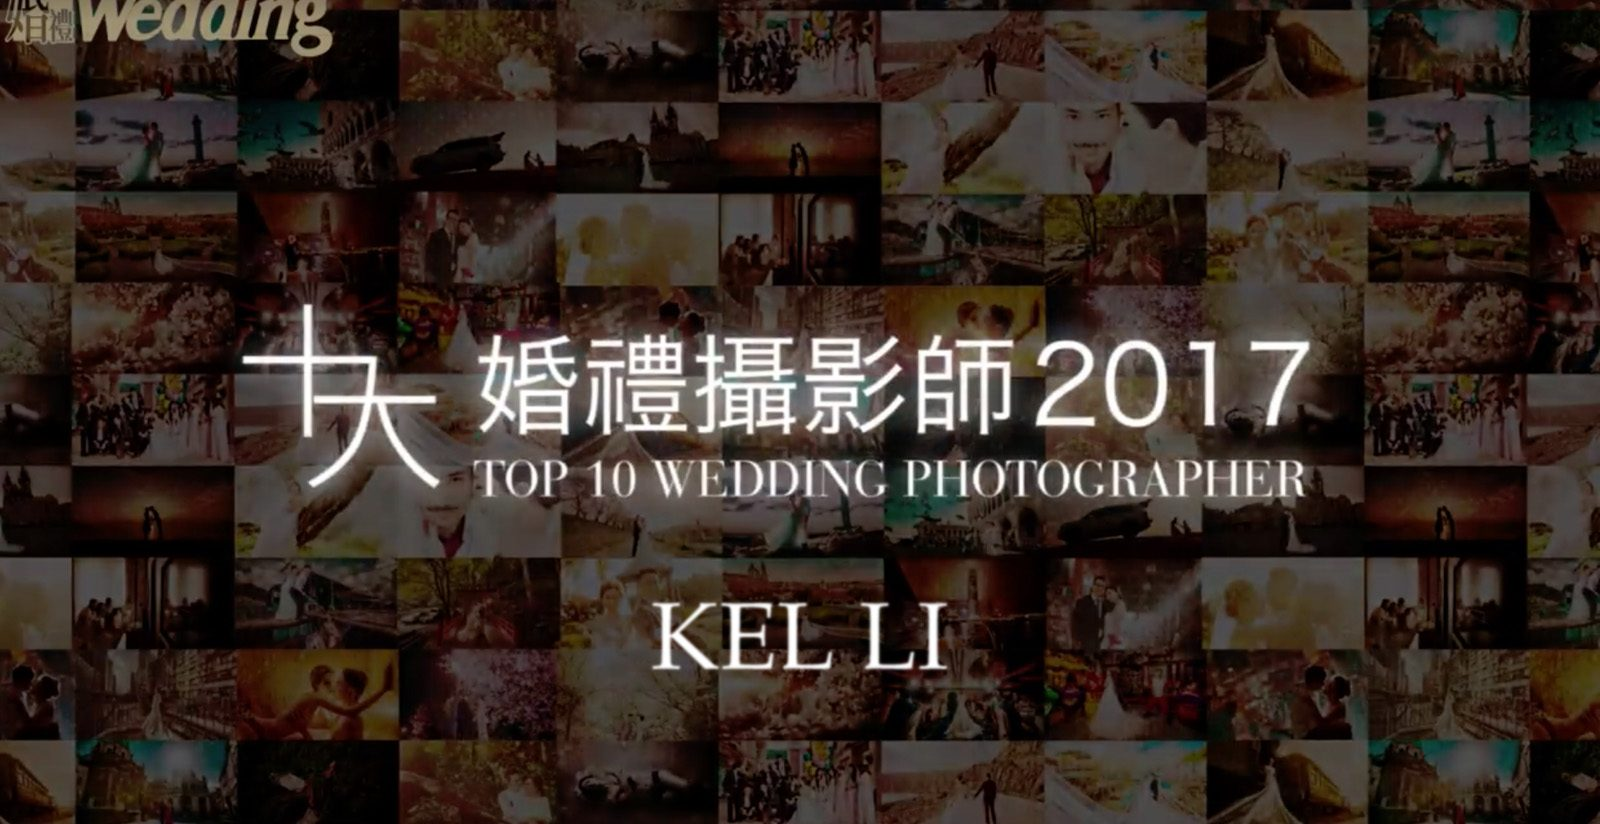 Kel Li Art Gallery -Top 10 Wedding Photographer , 十大婚紗攝影師